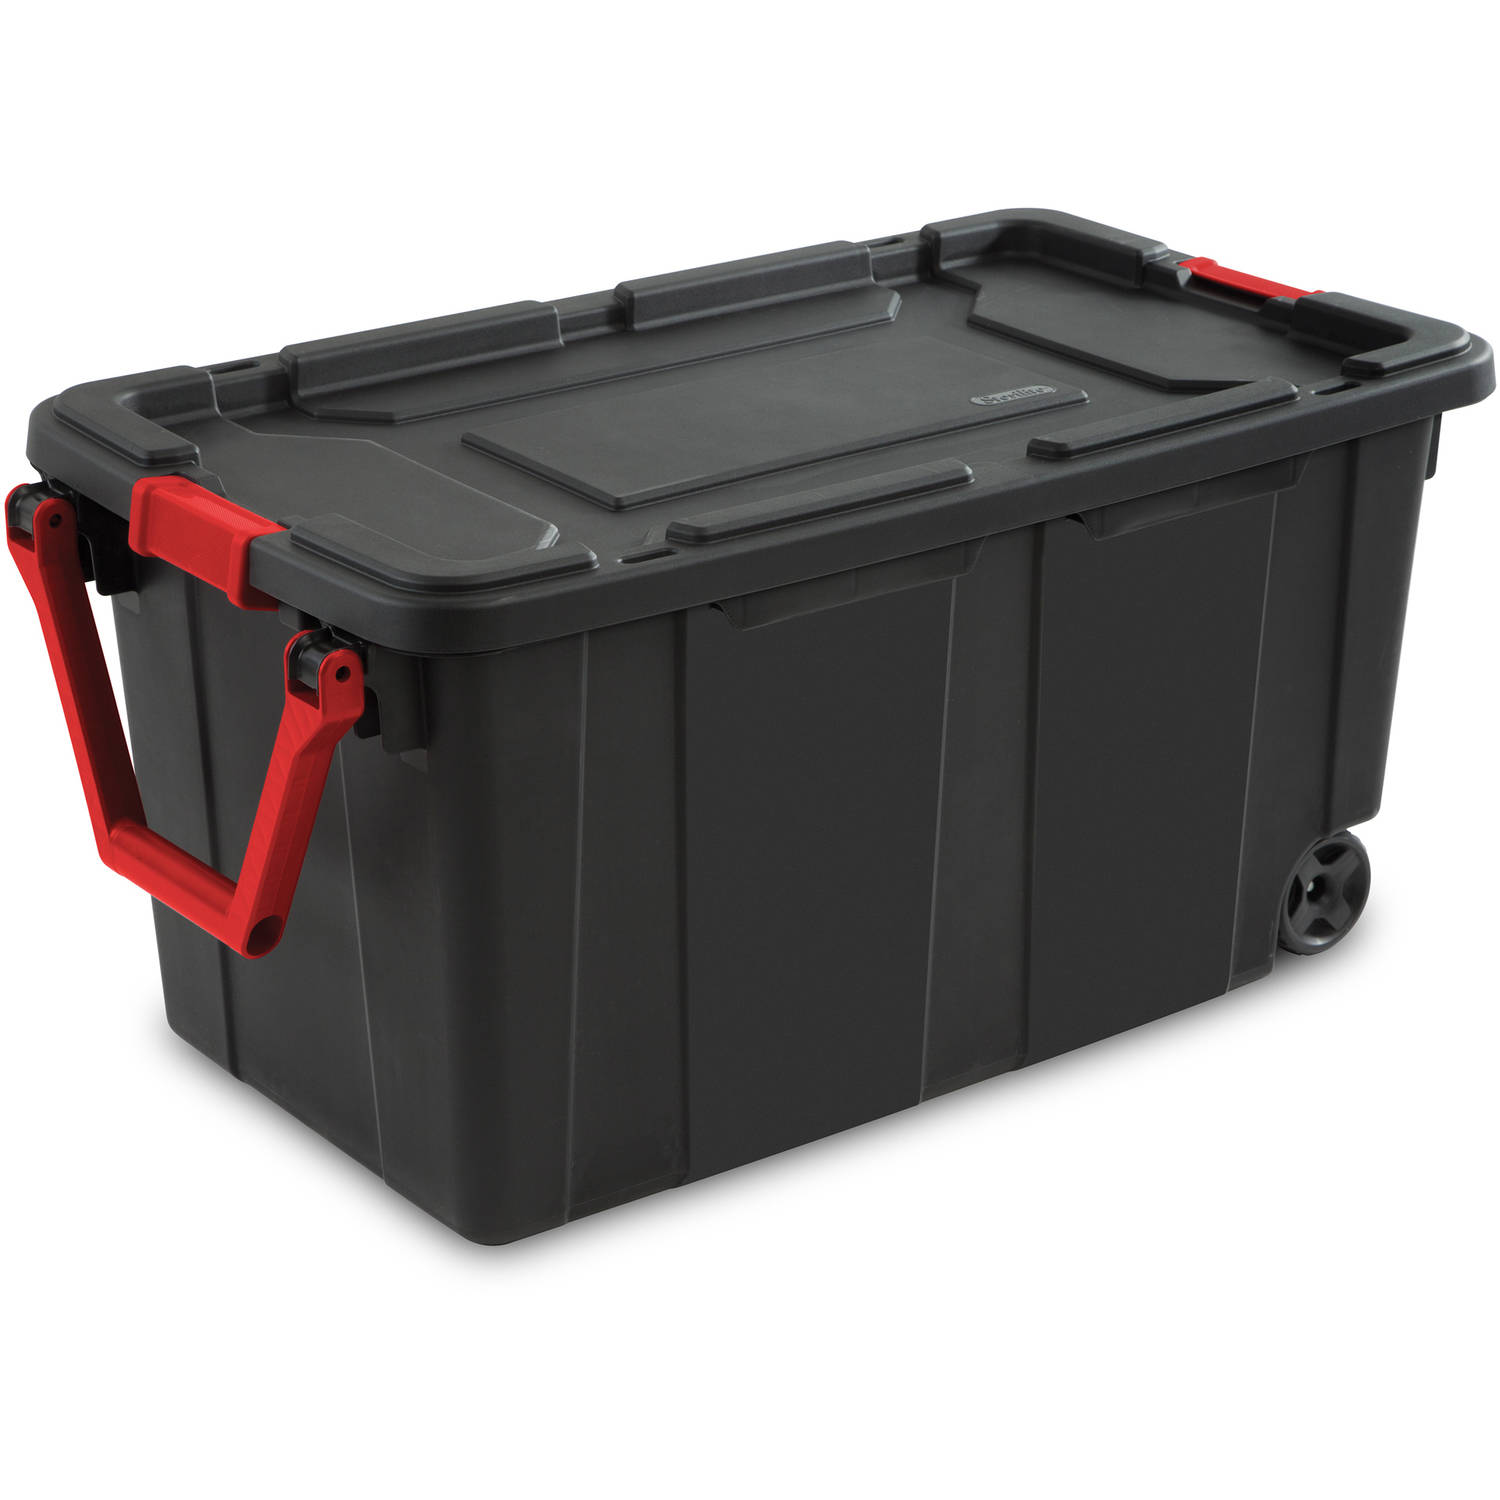 Sterilite 40 Gallon Wheeled Industrial Tote- Black, Case of 2